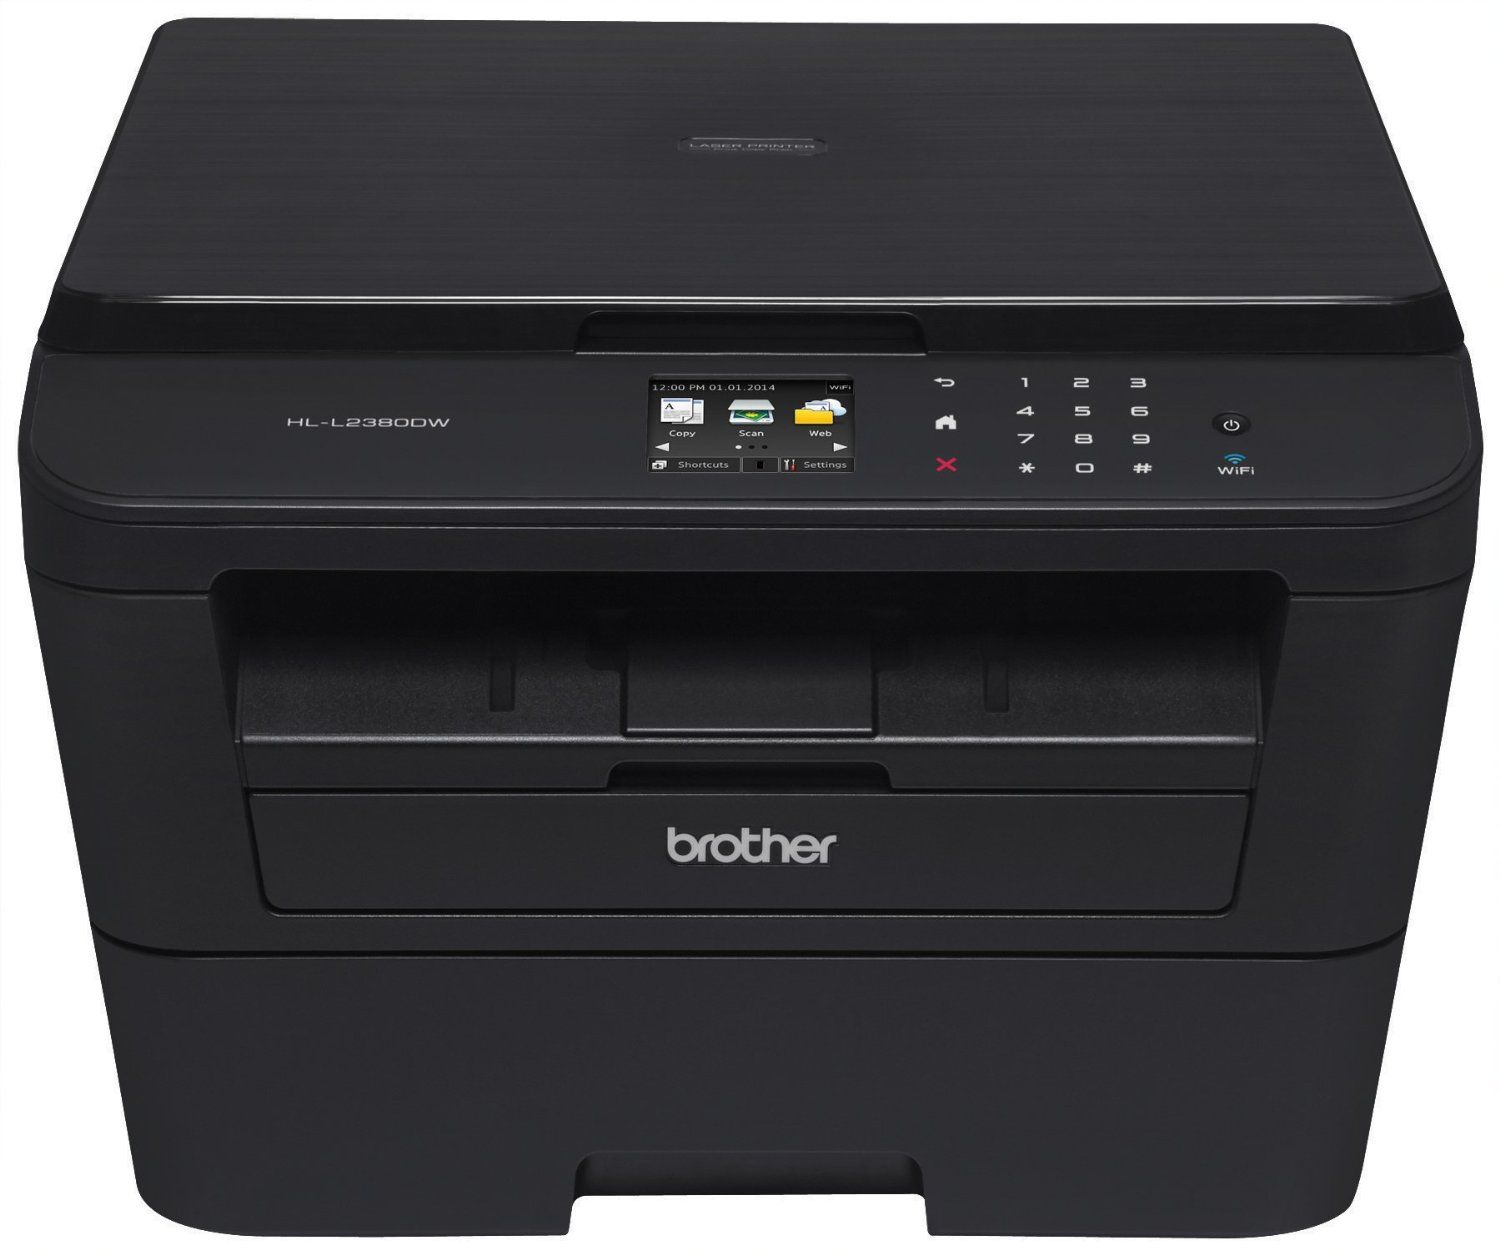 The Best Top 5 Brother Laser Printers In 2015 Reviews Laser Printer Multifunction Printer Best Laser Printer